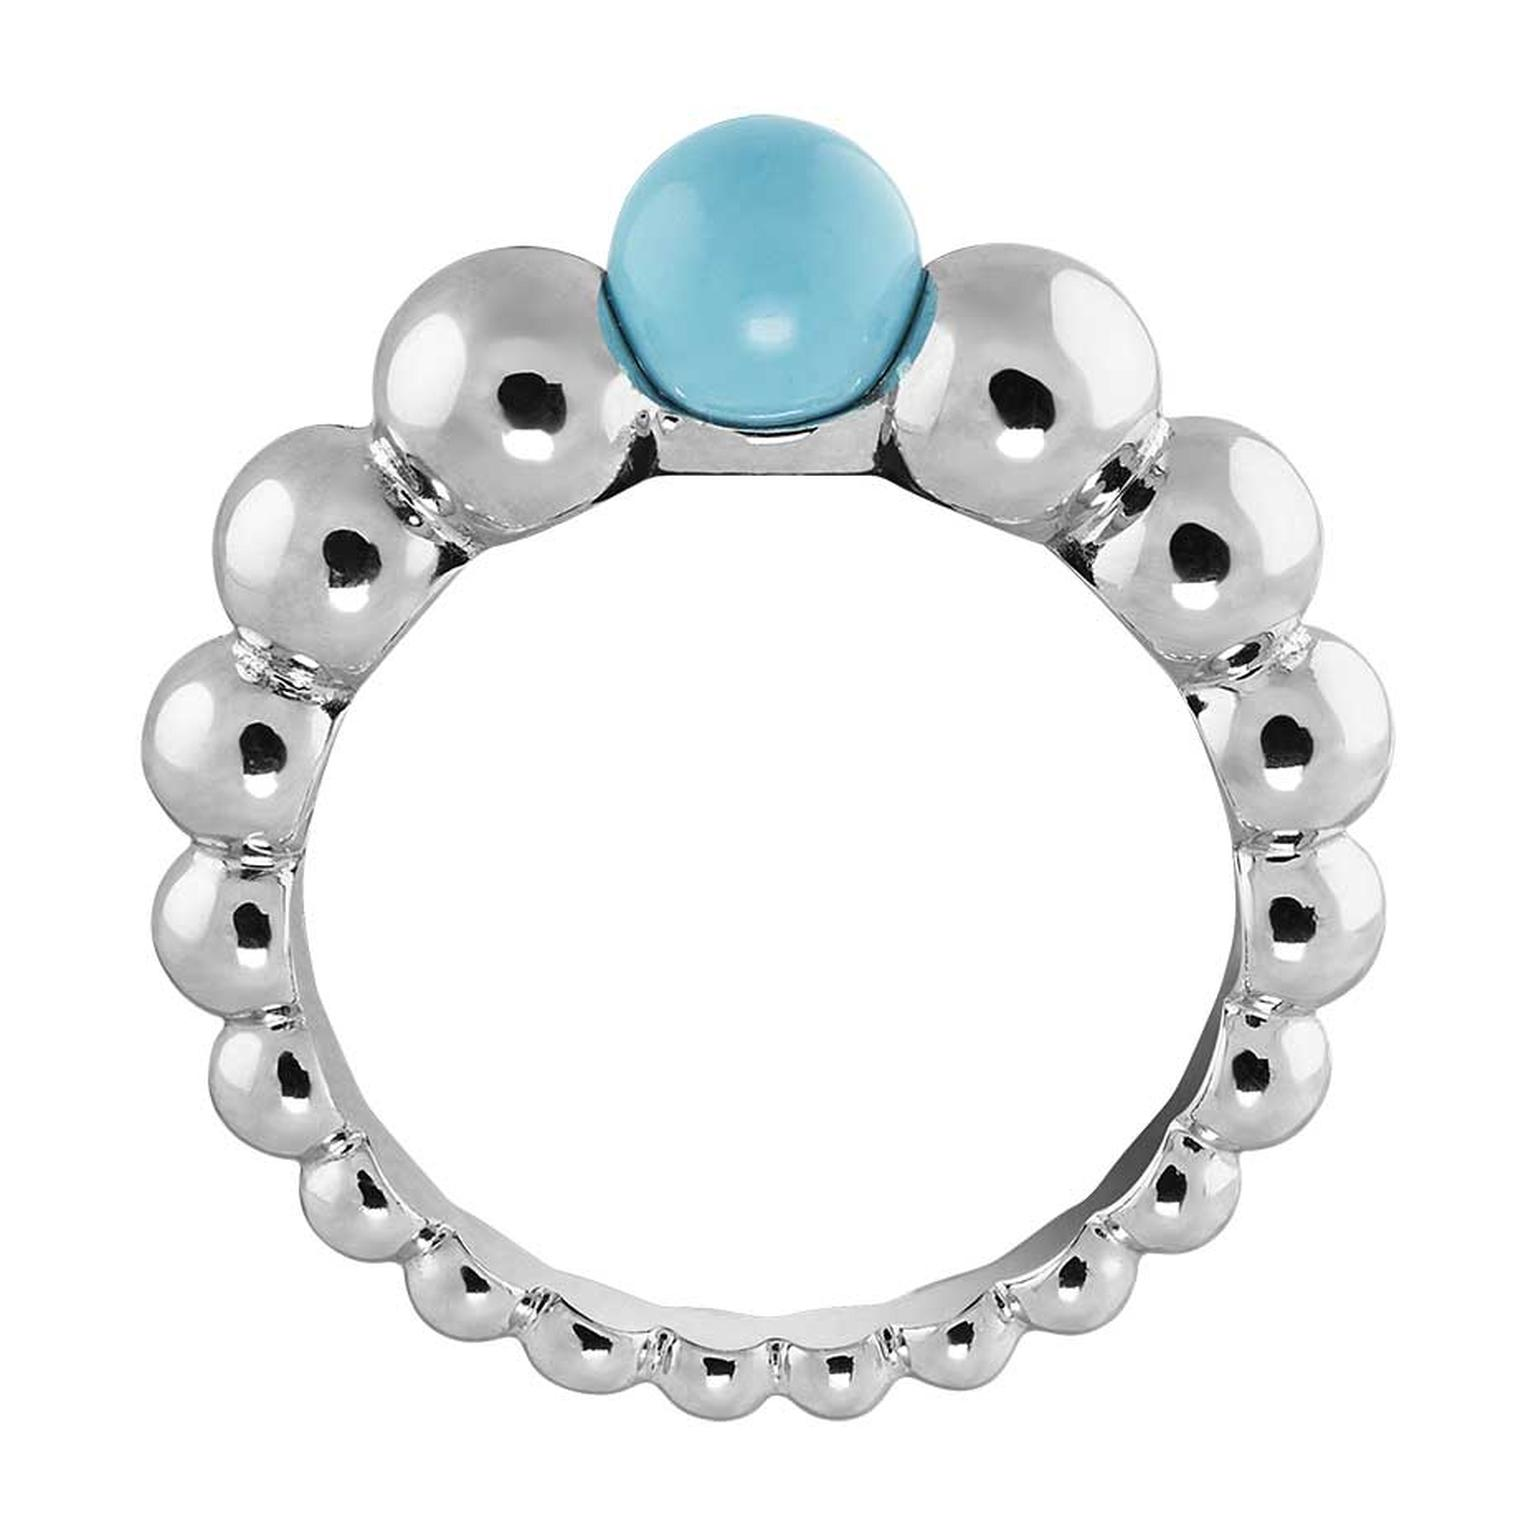 Van Cleef & Arpels Perlée Couleur ring in white gold with turquoise.